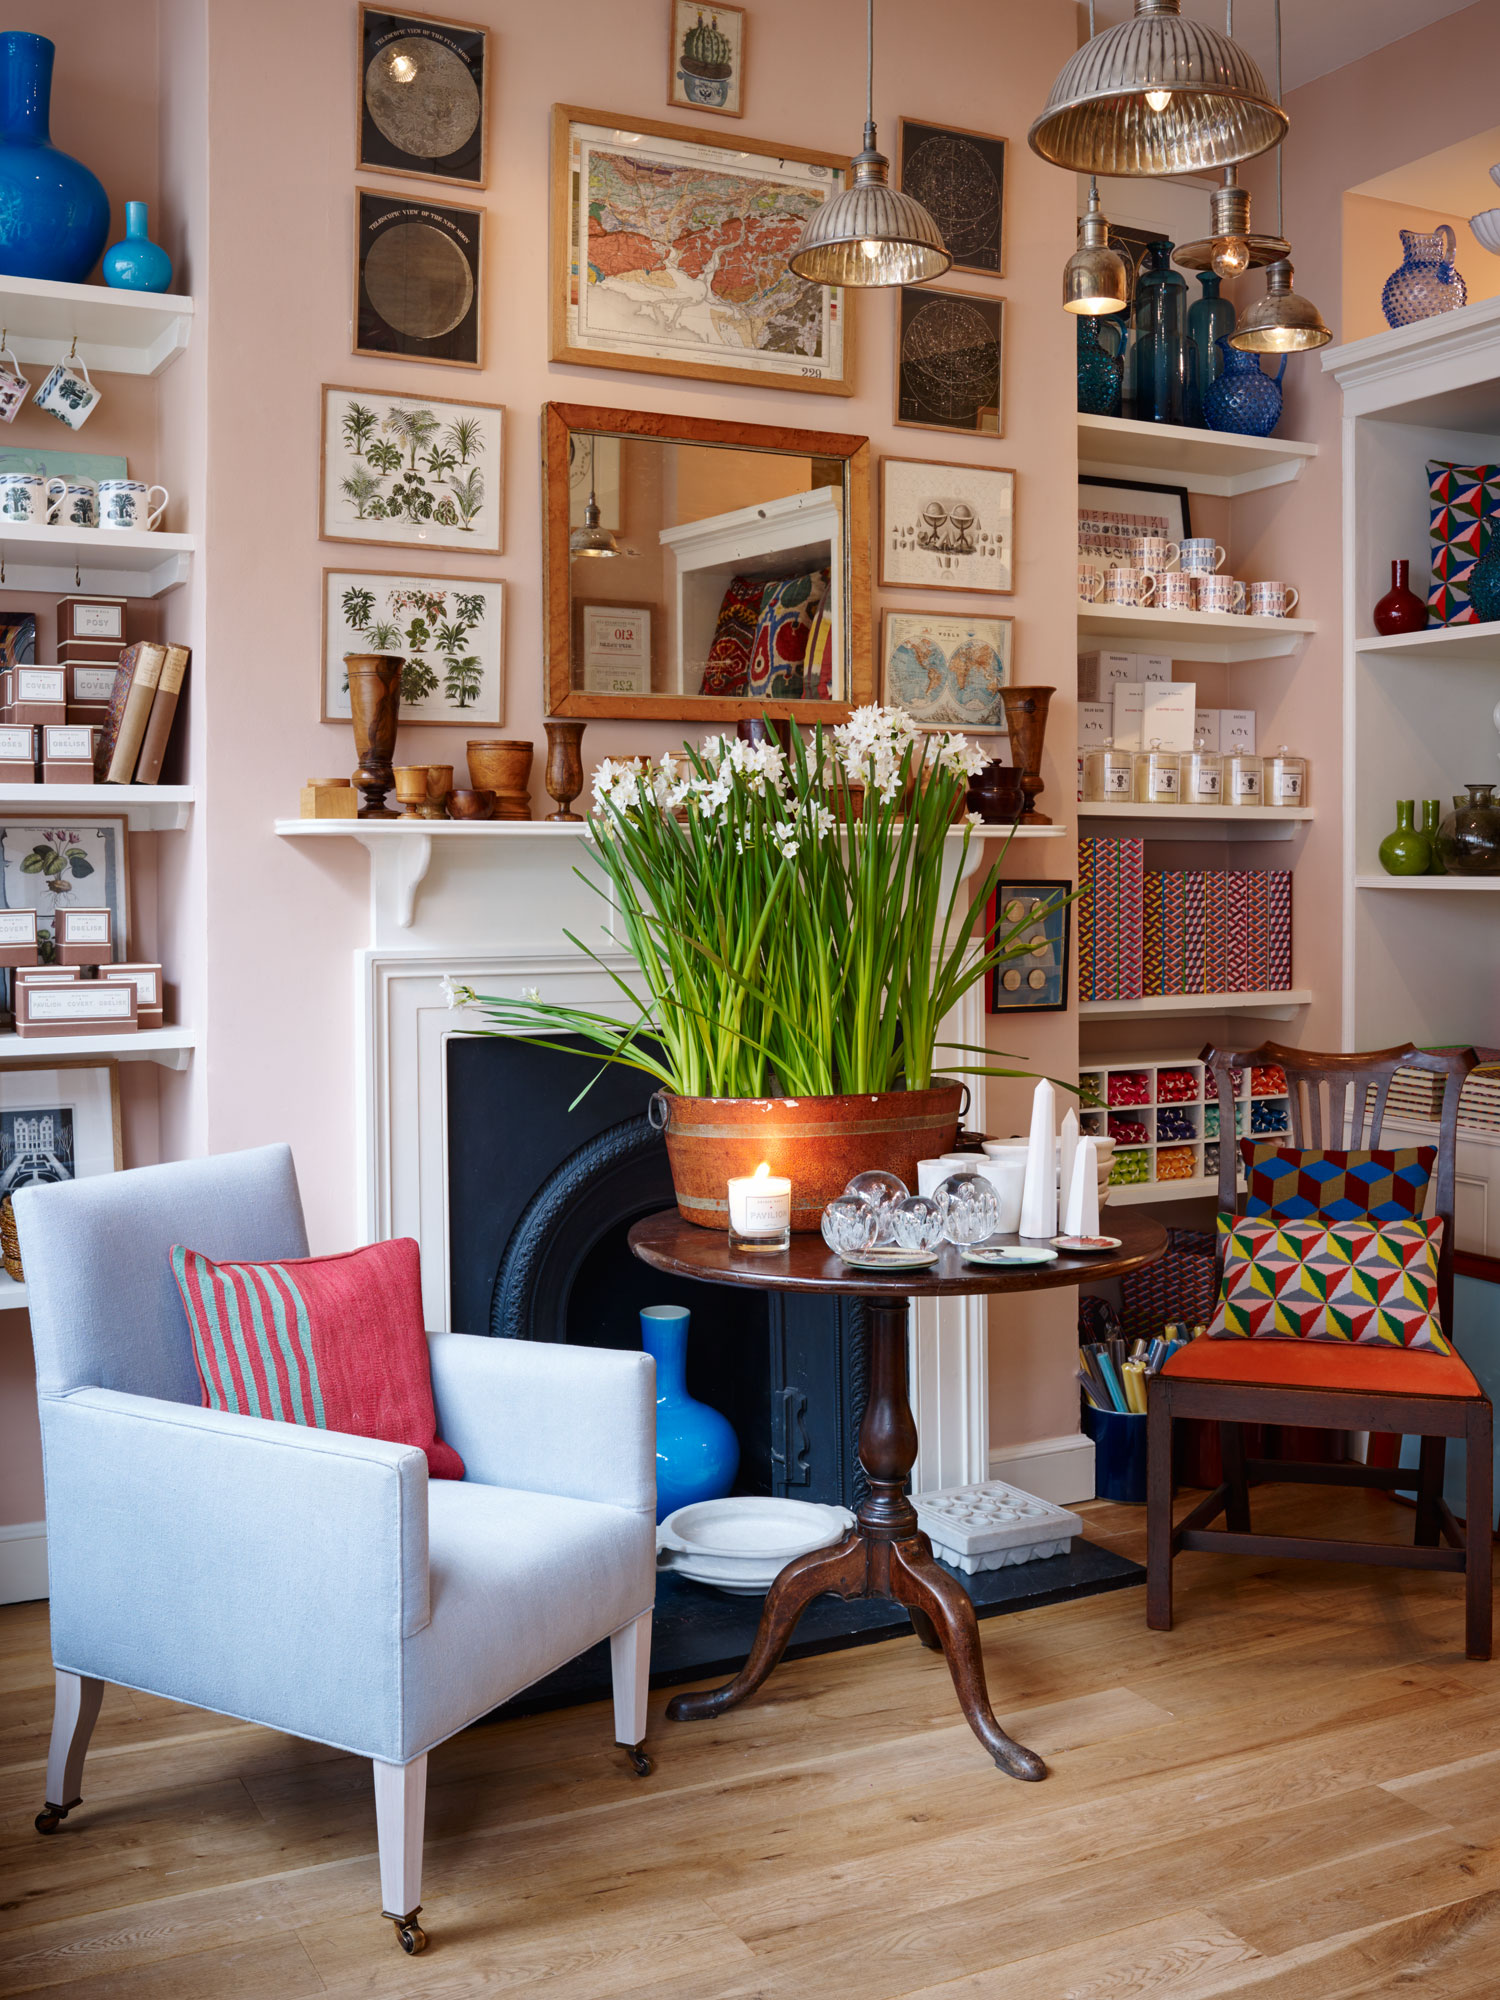 London Interior Shops Design is a journey of discovery